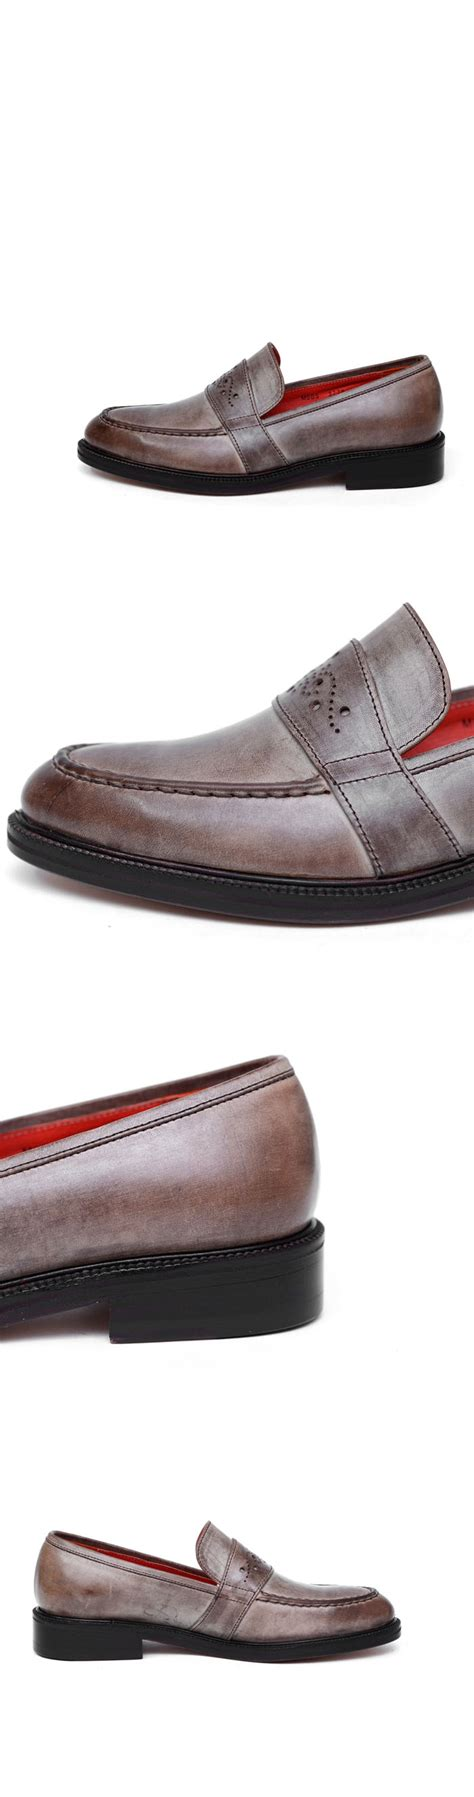 personalised loafers shoes gradation fade finish custom loafer shoes 332